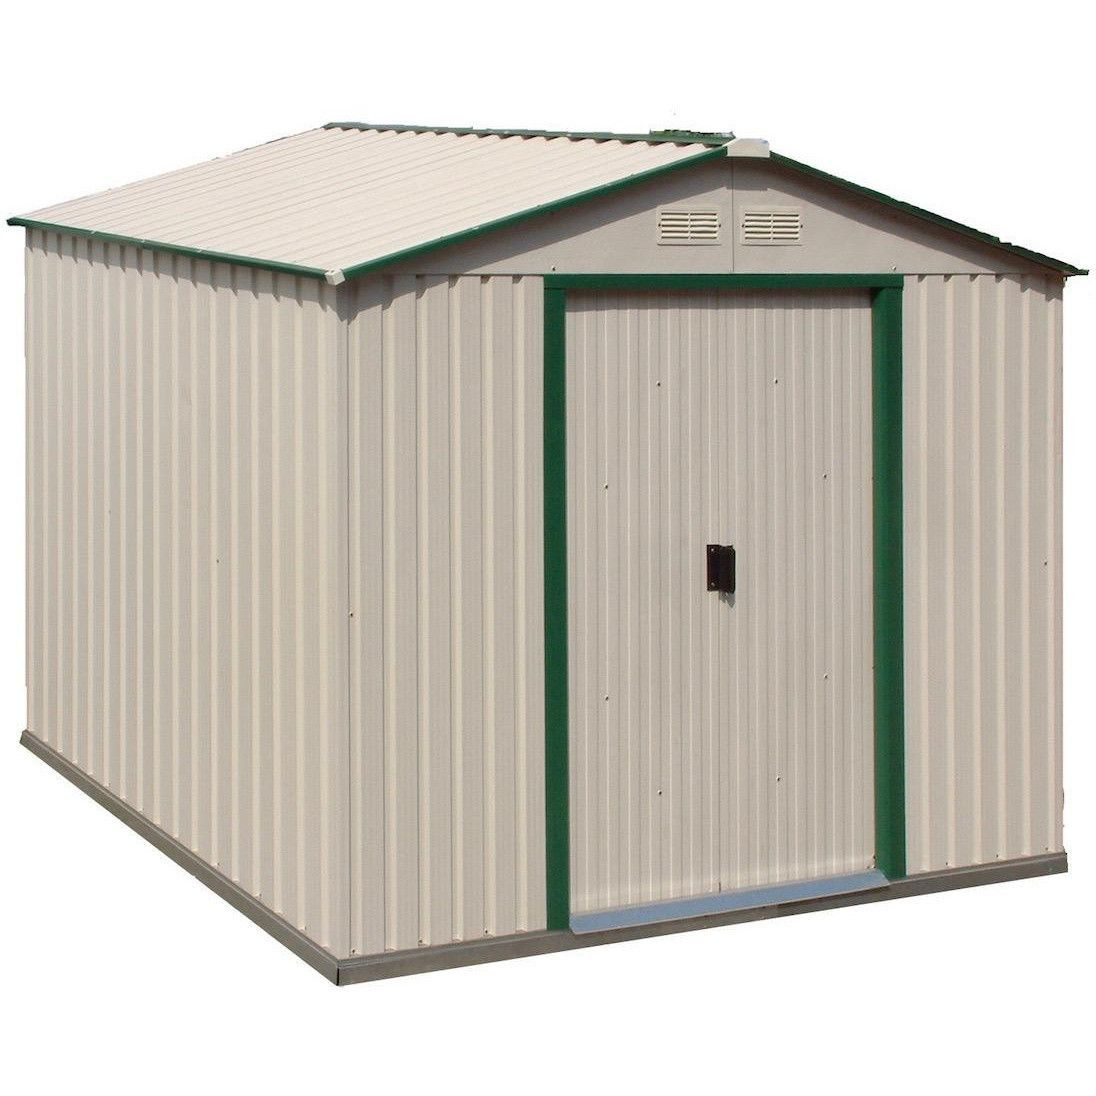 Duramax 10x8 Del Mar Metal Storage Shed With Foundation Kit Metal Shed Shed Metal Storage Sheds